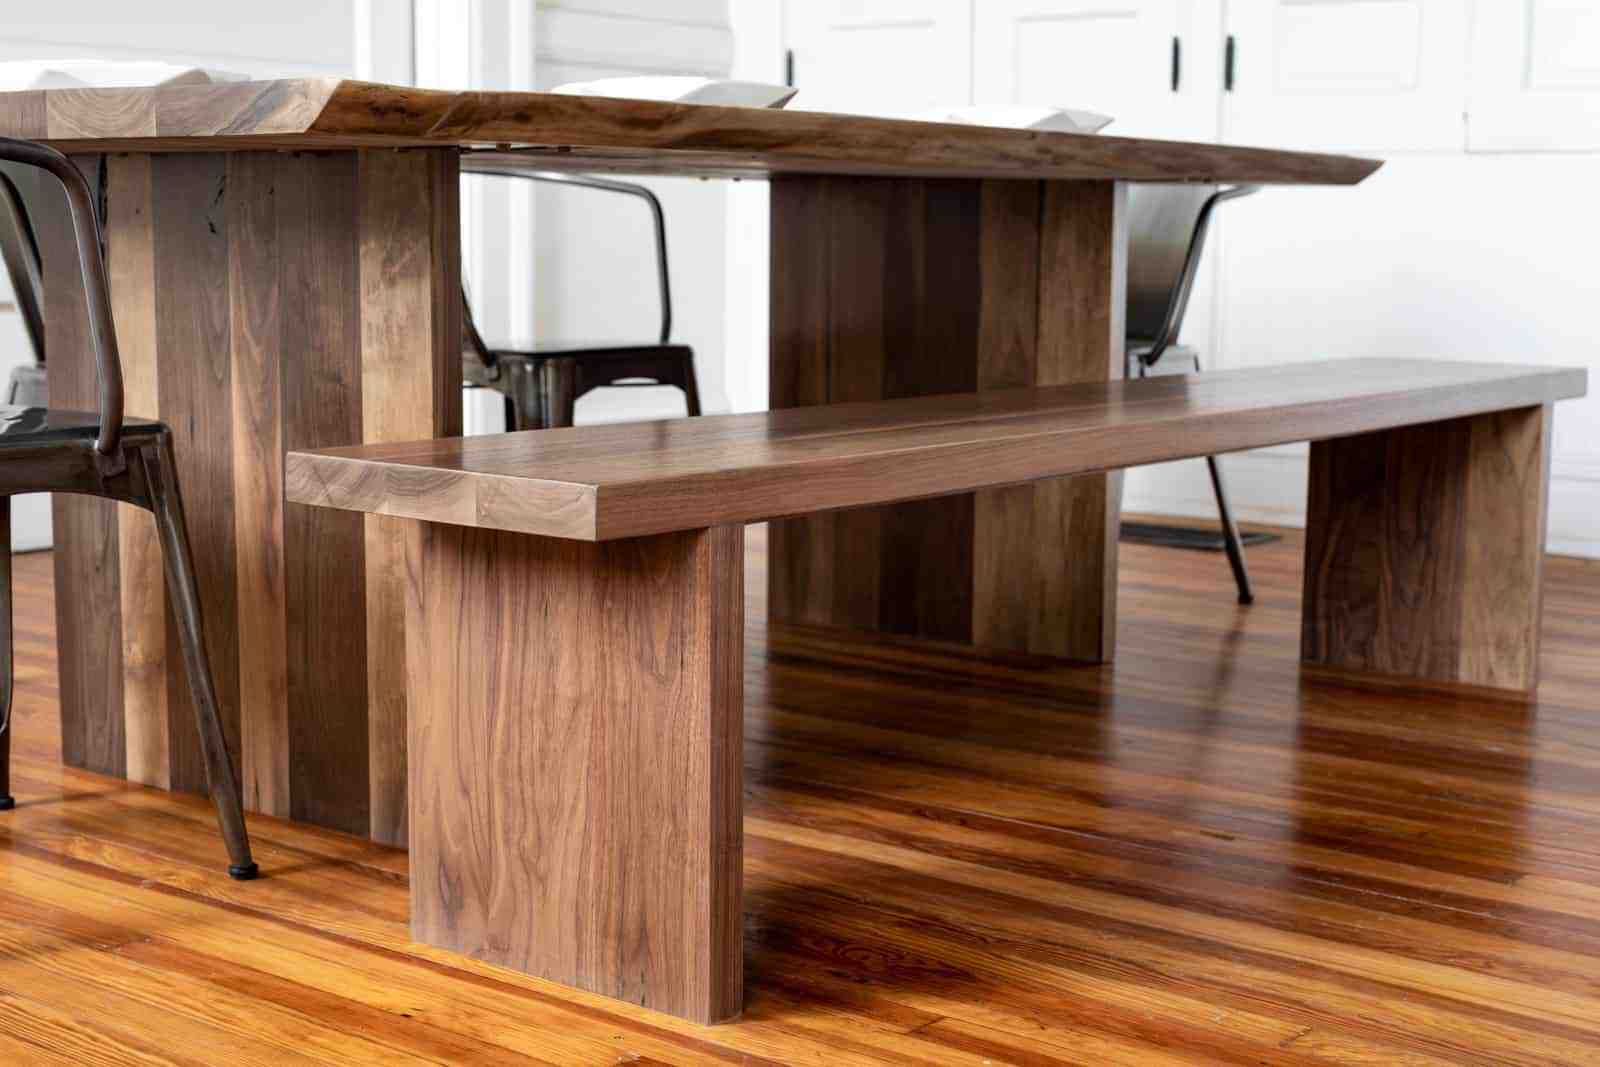 A Coleson Bench gives more dining space per person